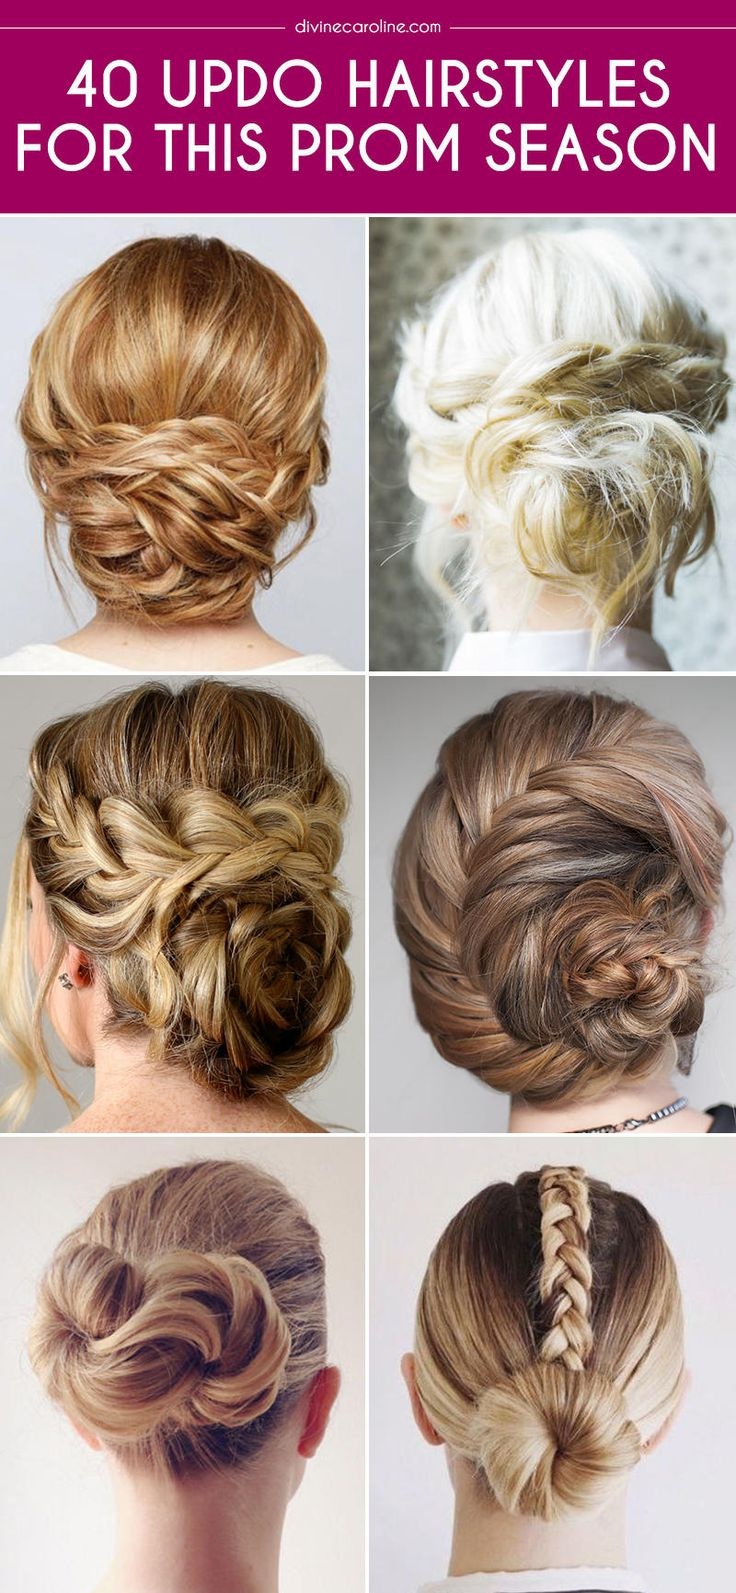 Here are 40 updo hairstyles for prom and the tutorials that will help you create them.